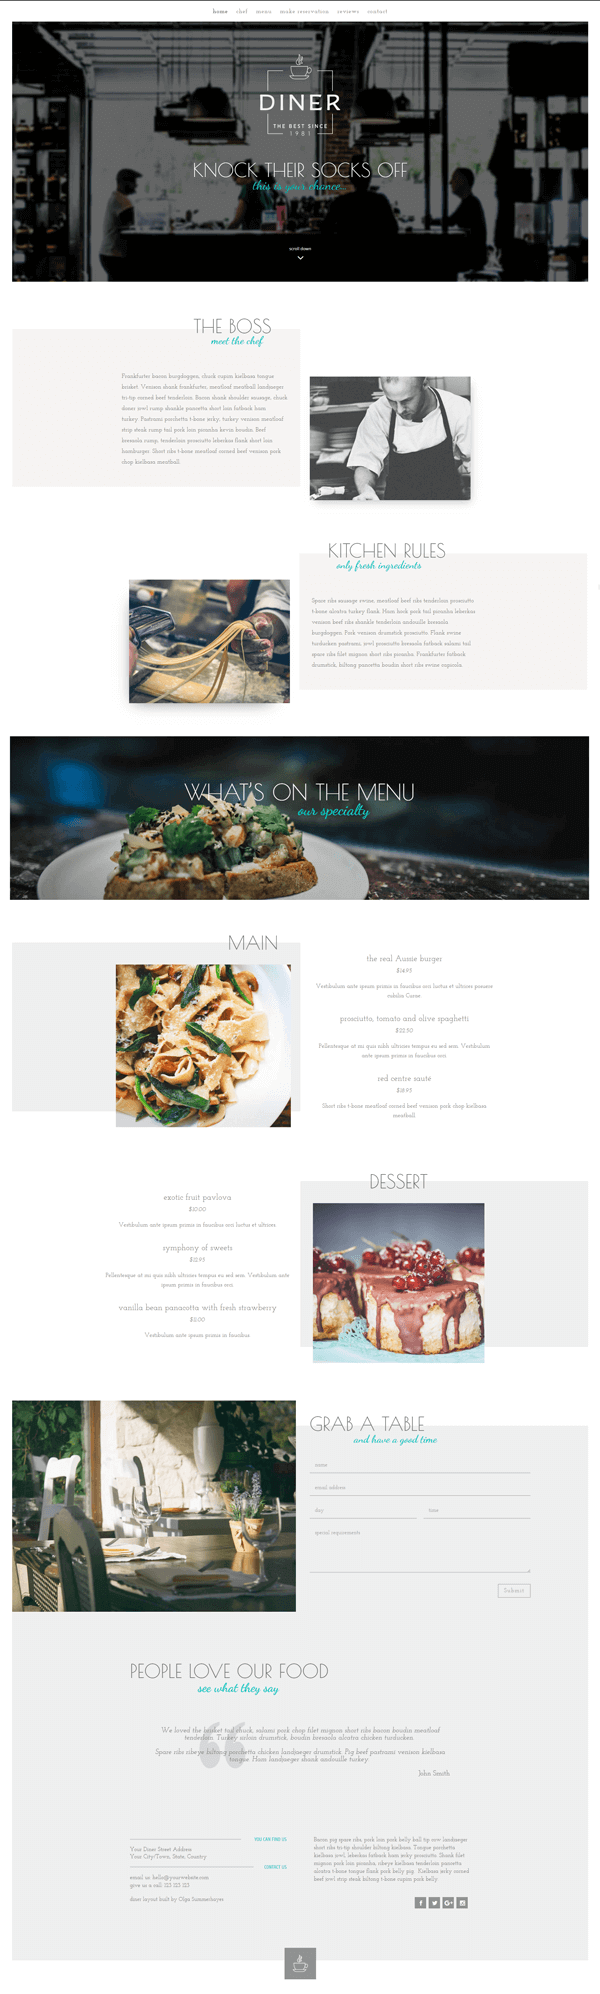 Restaurant layout for Divi theme by Olga Summerhayes